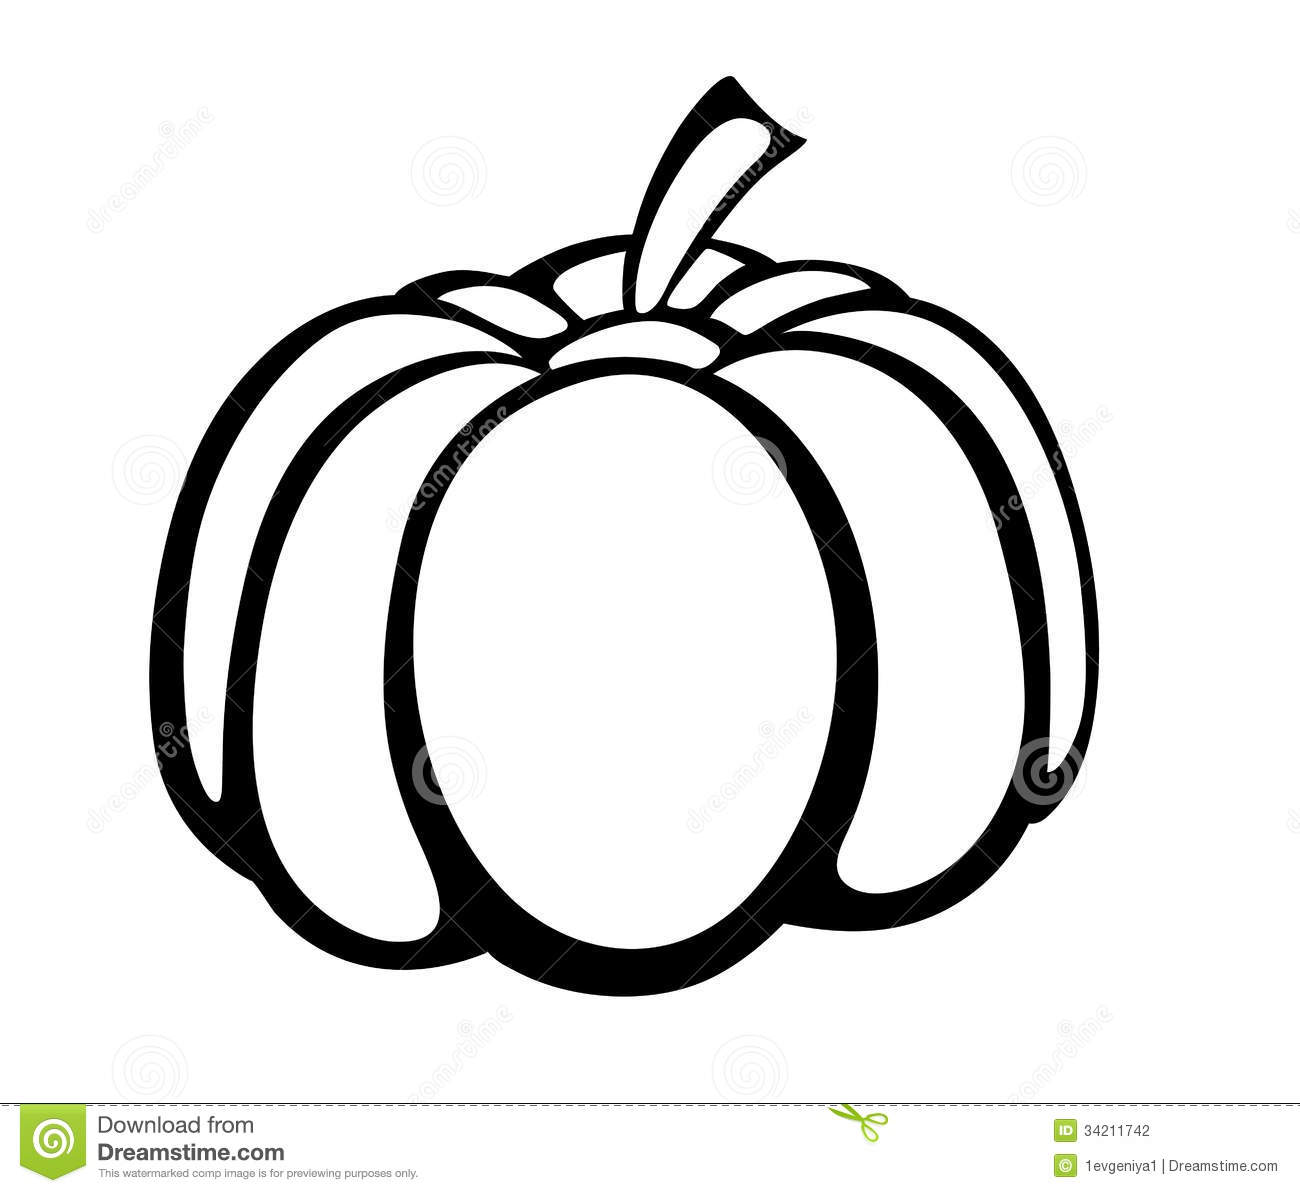 vector monochrome illustration of pumpkin logo stock vector rh dreamstime com Pumpkin Clip Art Halloween Pumpkin Vector